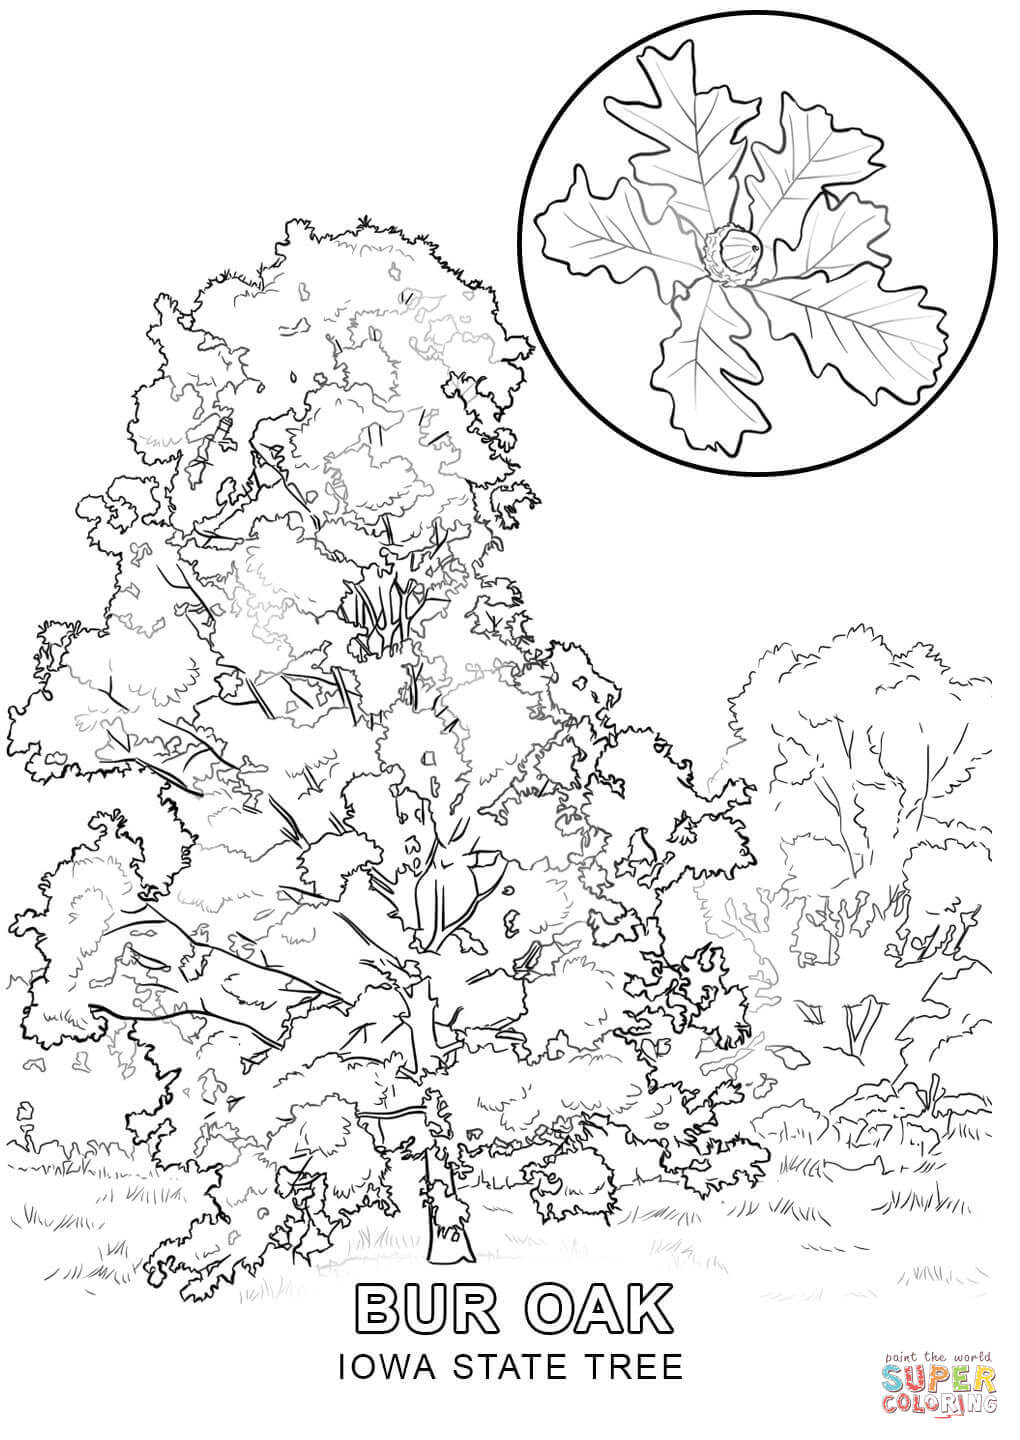 Iowa State Tree Coloring Page | Free Printable Coloring Pages - Tree Coloring Pages Free Printable